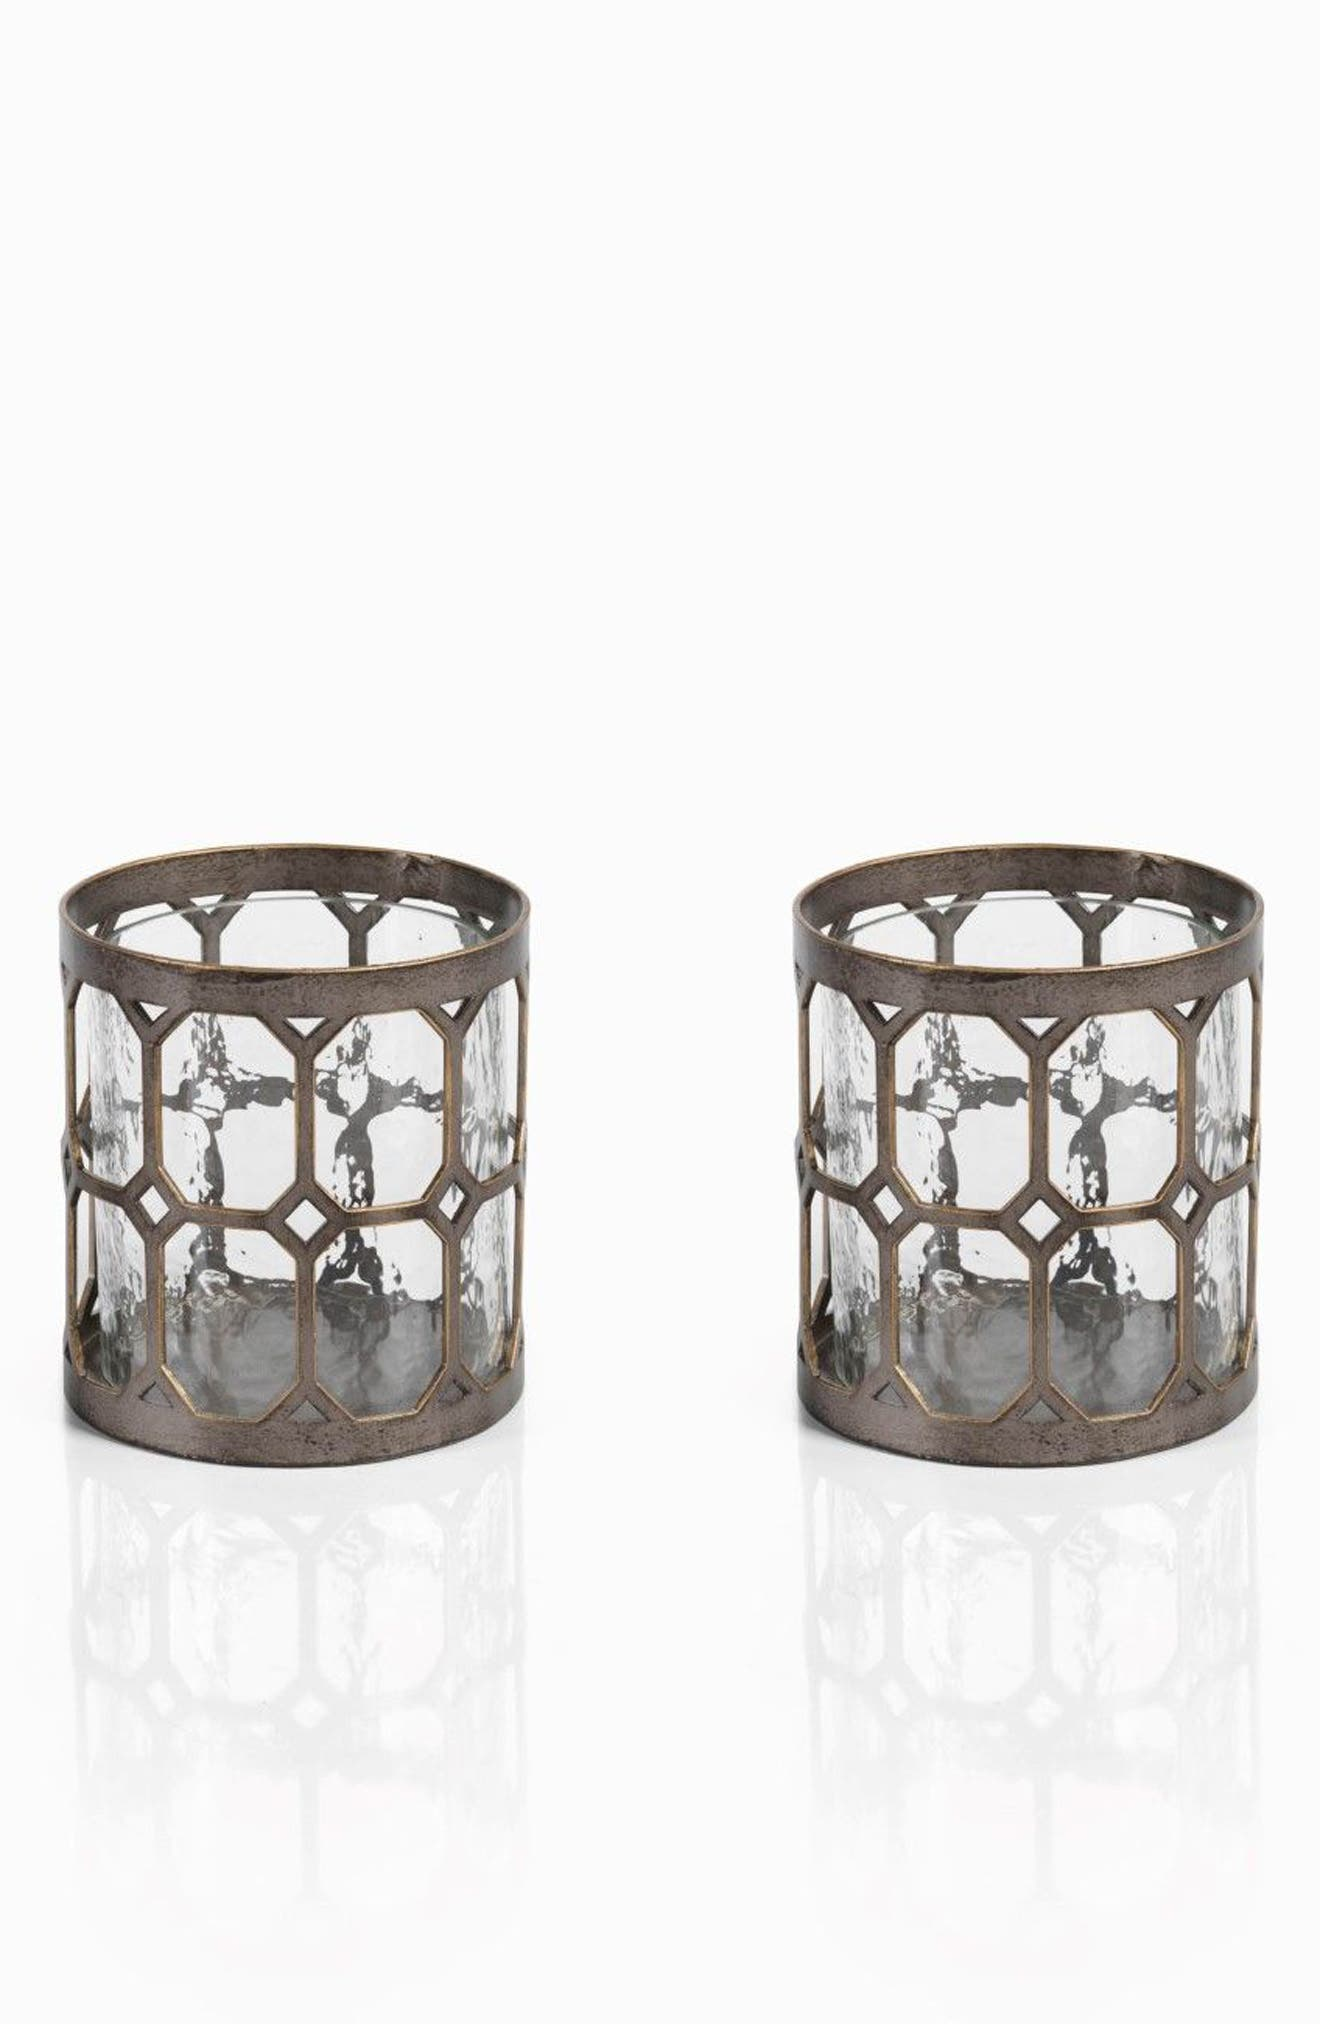 Main Image - Zodax Loire Set of 2 Hurricane Candle Holders